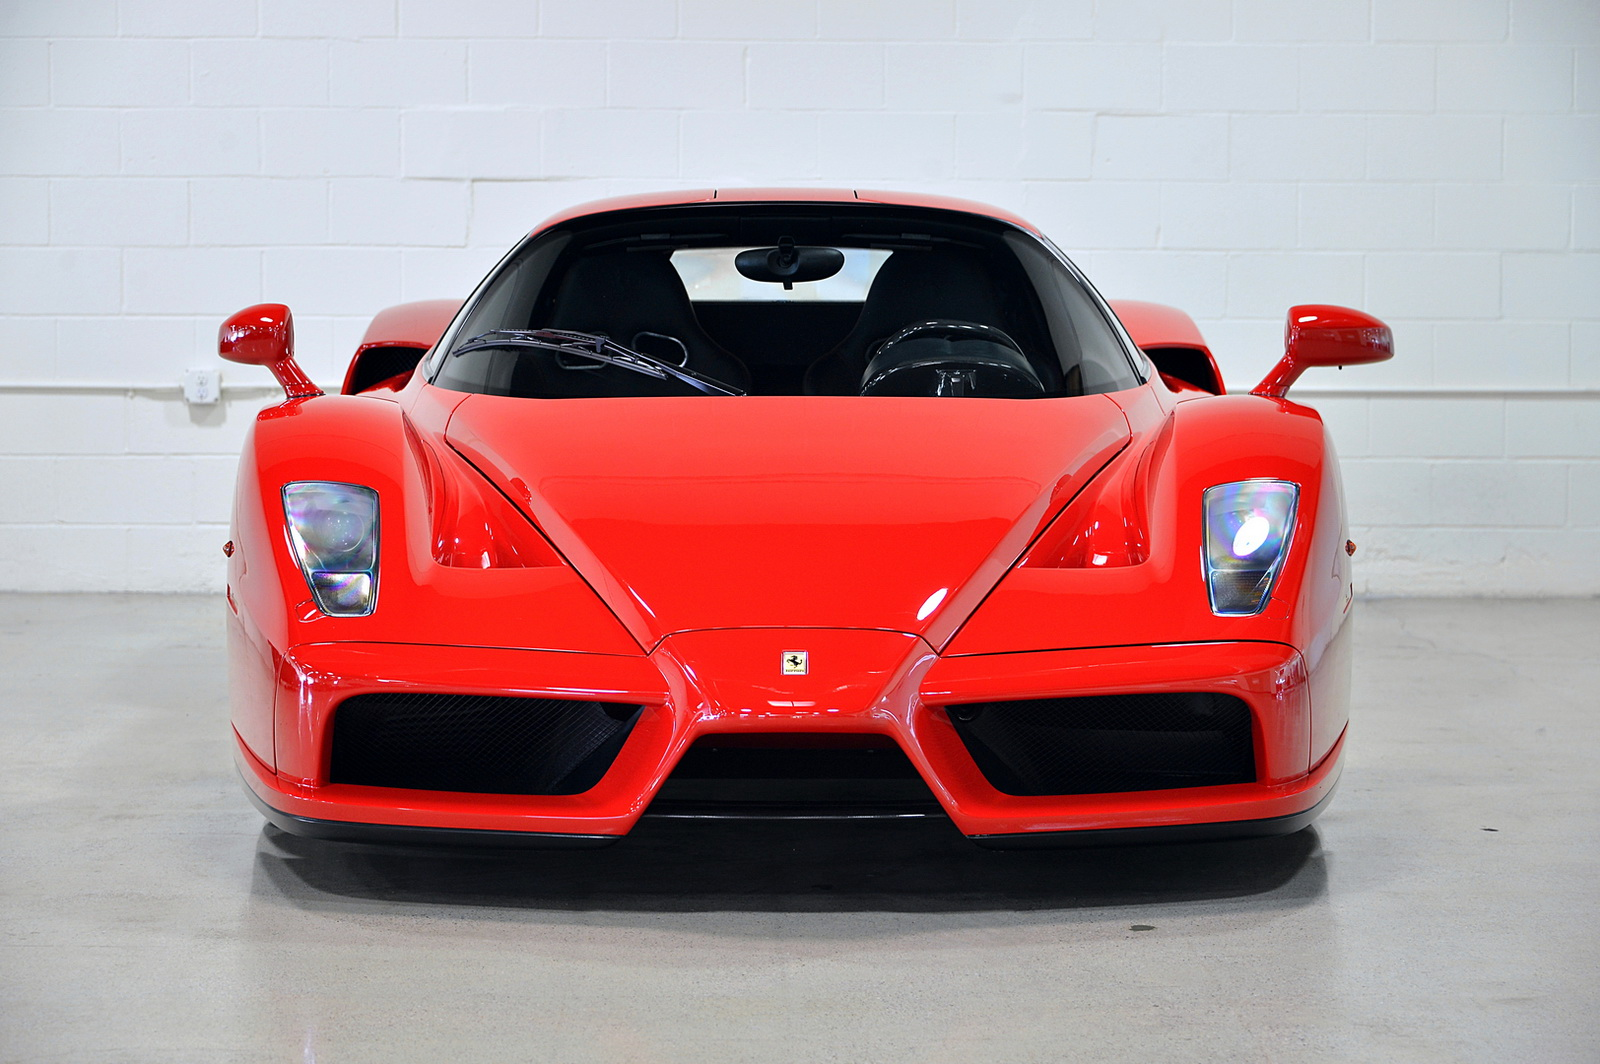 ferrari laferrari blue with My Precious Ferrari Enzo With Just 354 on Lamborghini Aventador Black And White likewise Ride On Lamborghini Urus Red 24GHz also Laferrari together with Top 10 Most Expensive Cars likewise Lamborghini.